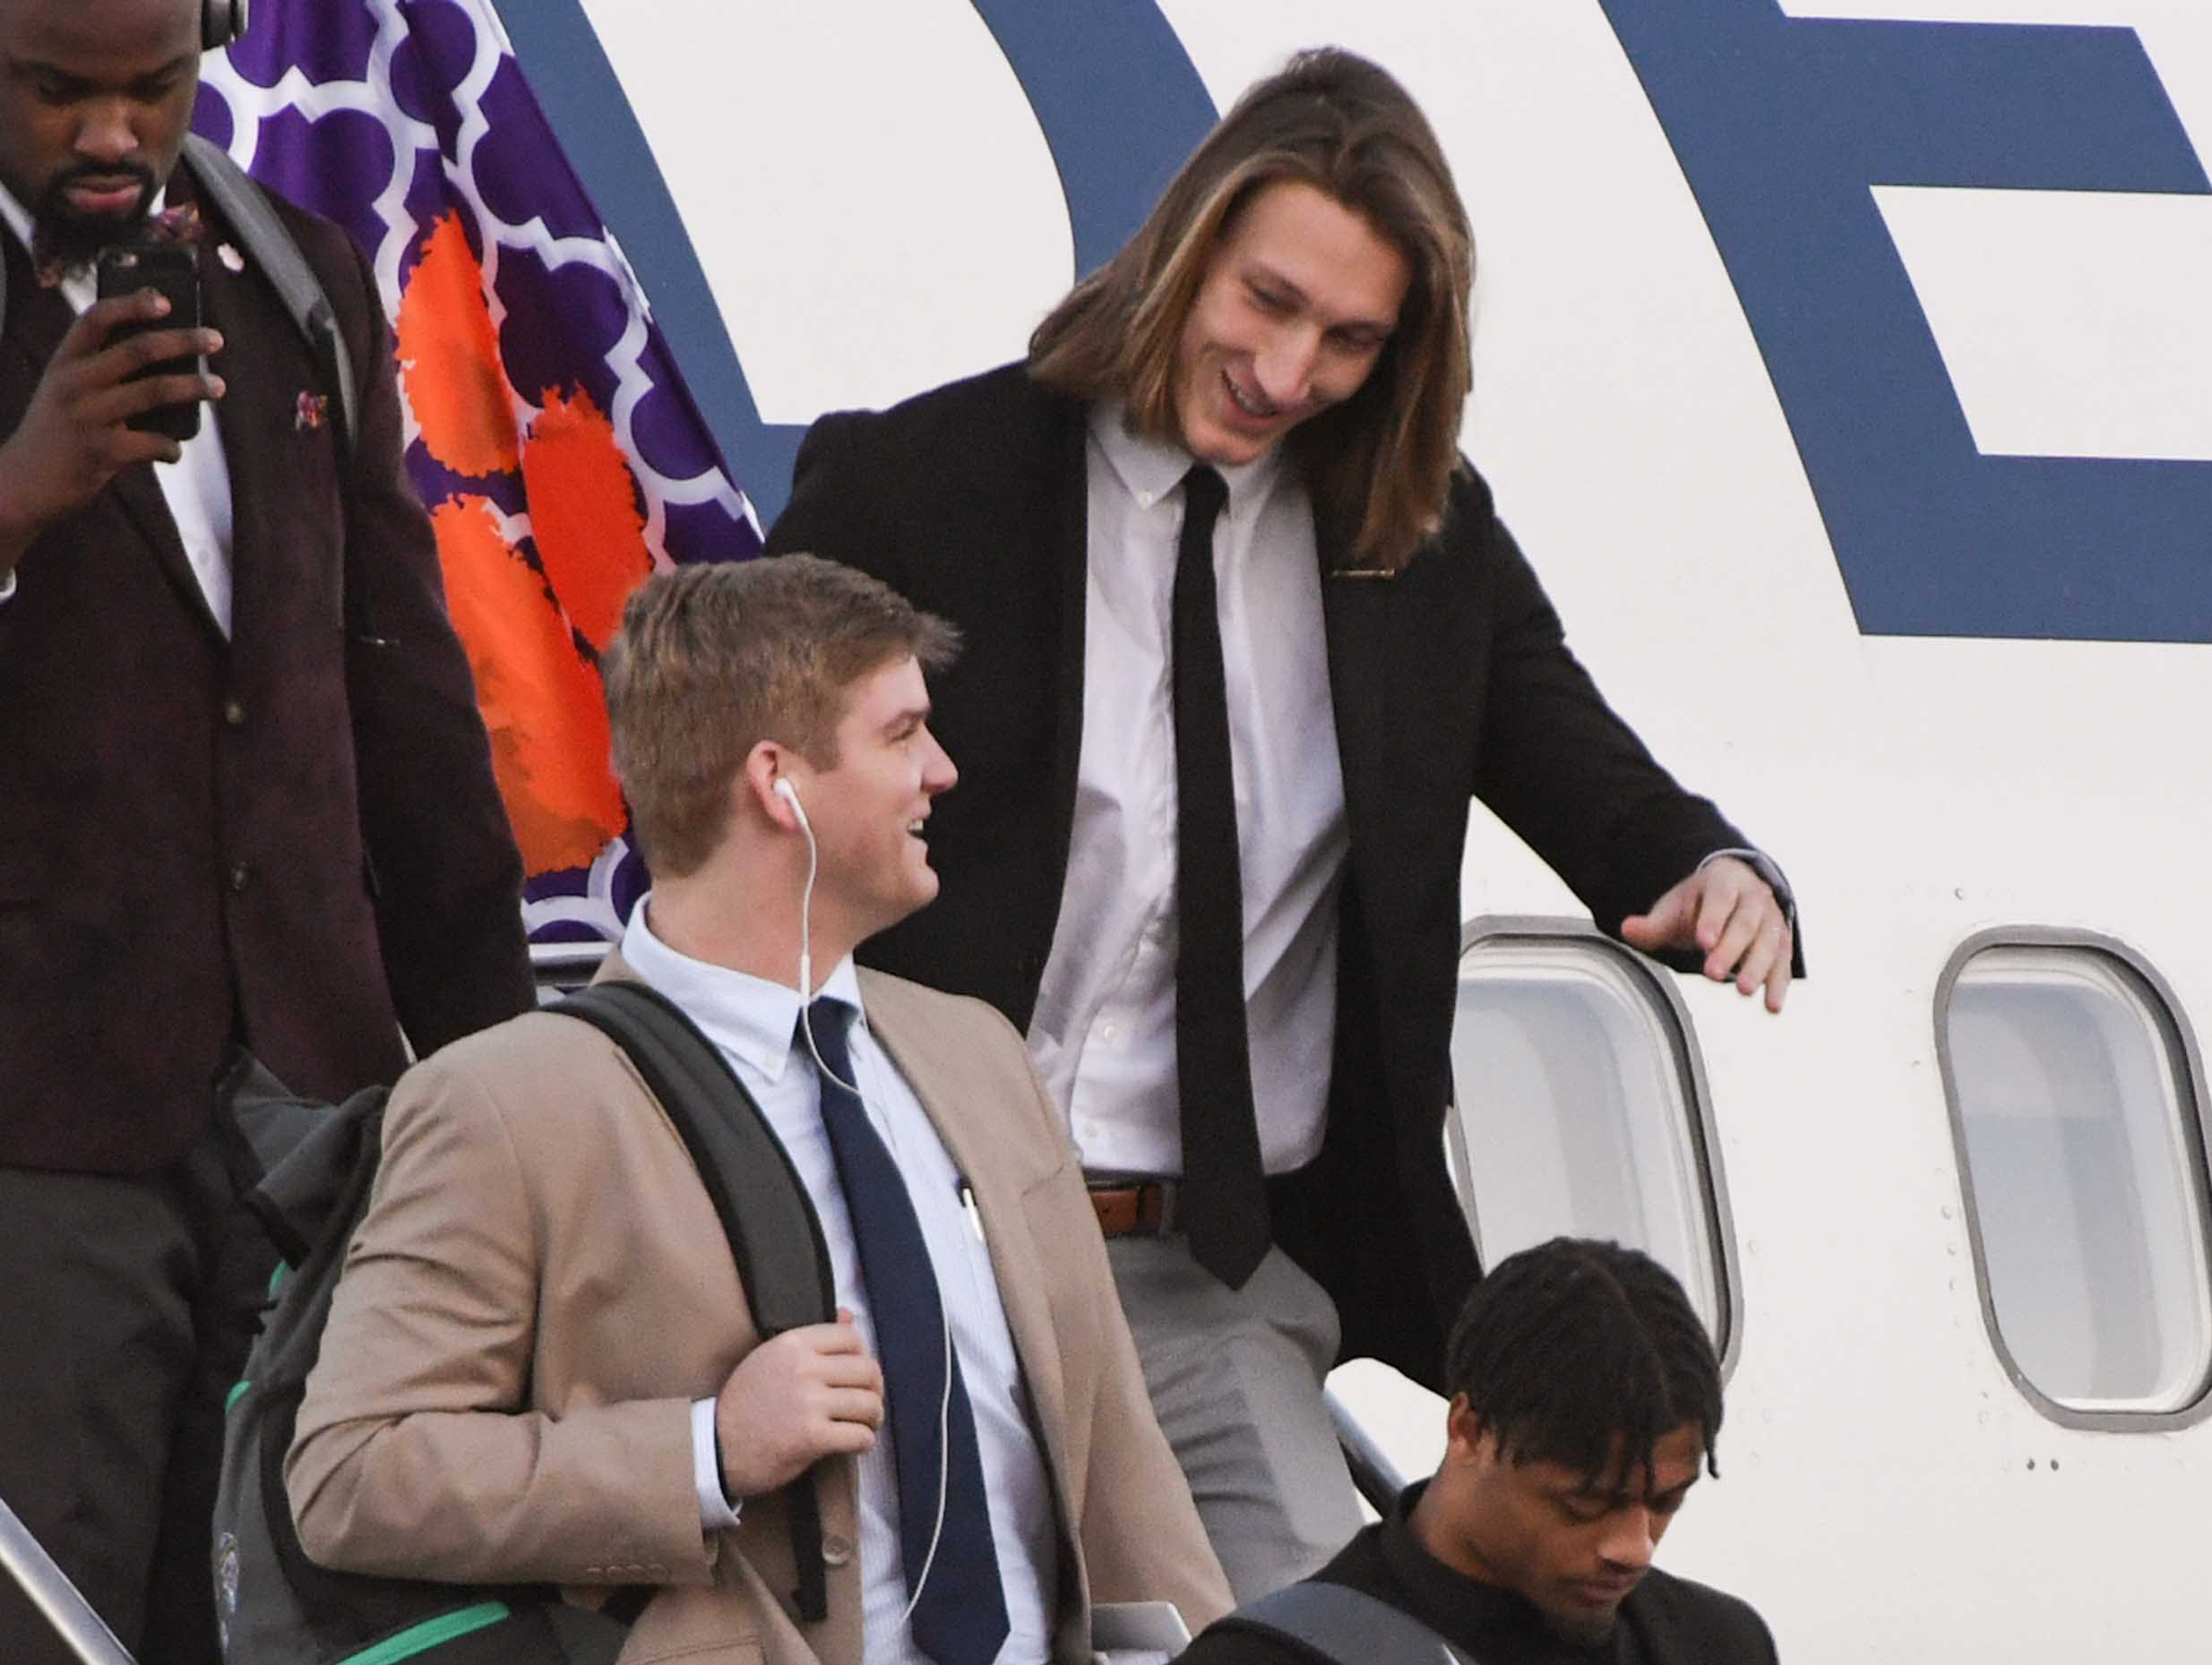 Clemson quarterbacks Chase Brice, left, and Trevor Lawrence arrive at San Jose International Airport in San Jose, California January 4, 2019.